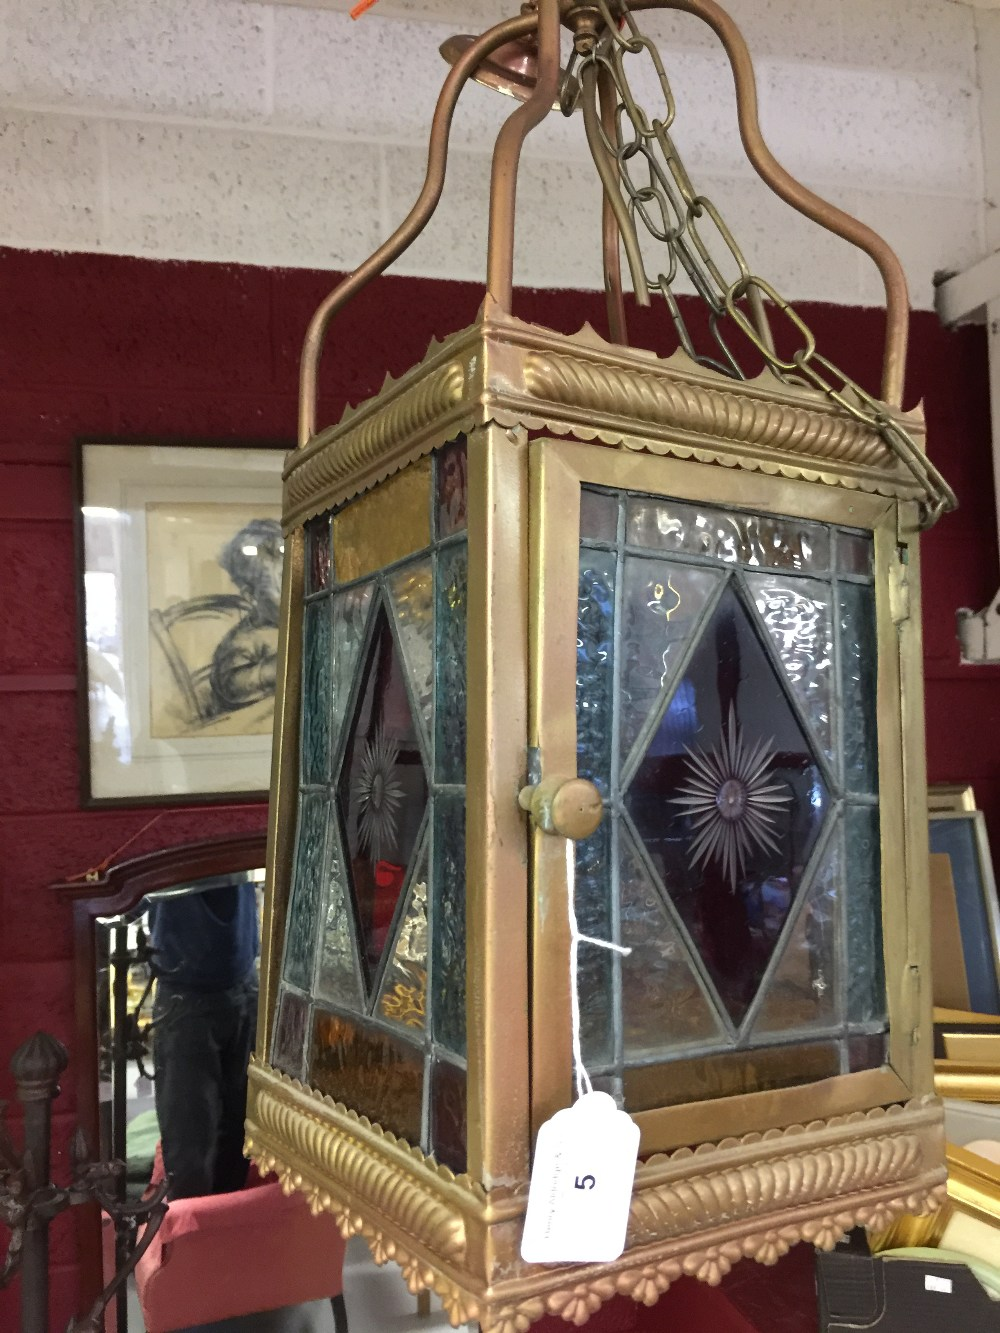 Lot 5 - 20th cent. Lighting: Gothic style brass hall lantern with stained glass panels. 22ins. rectangular